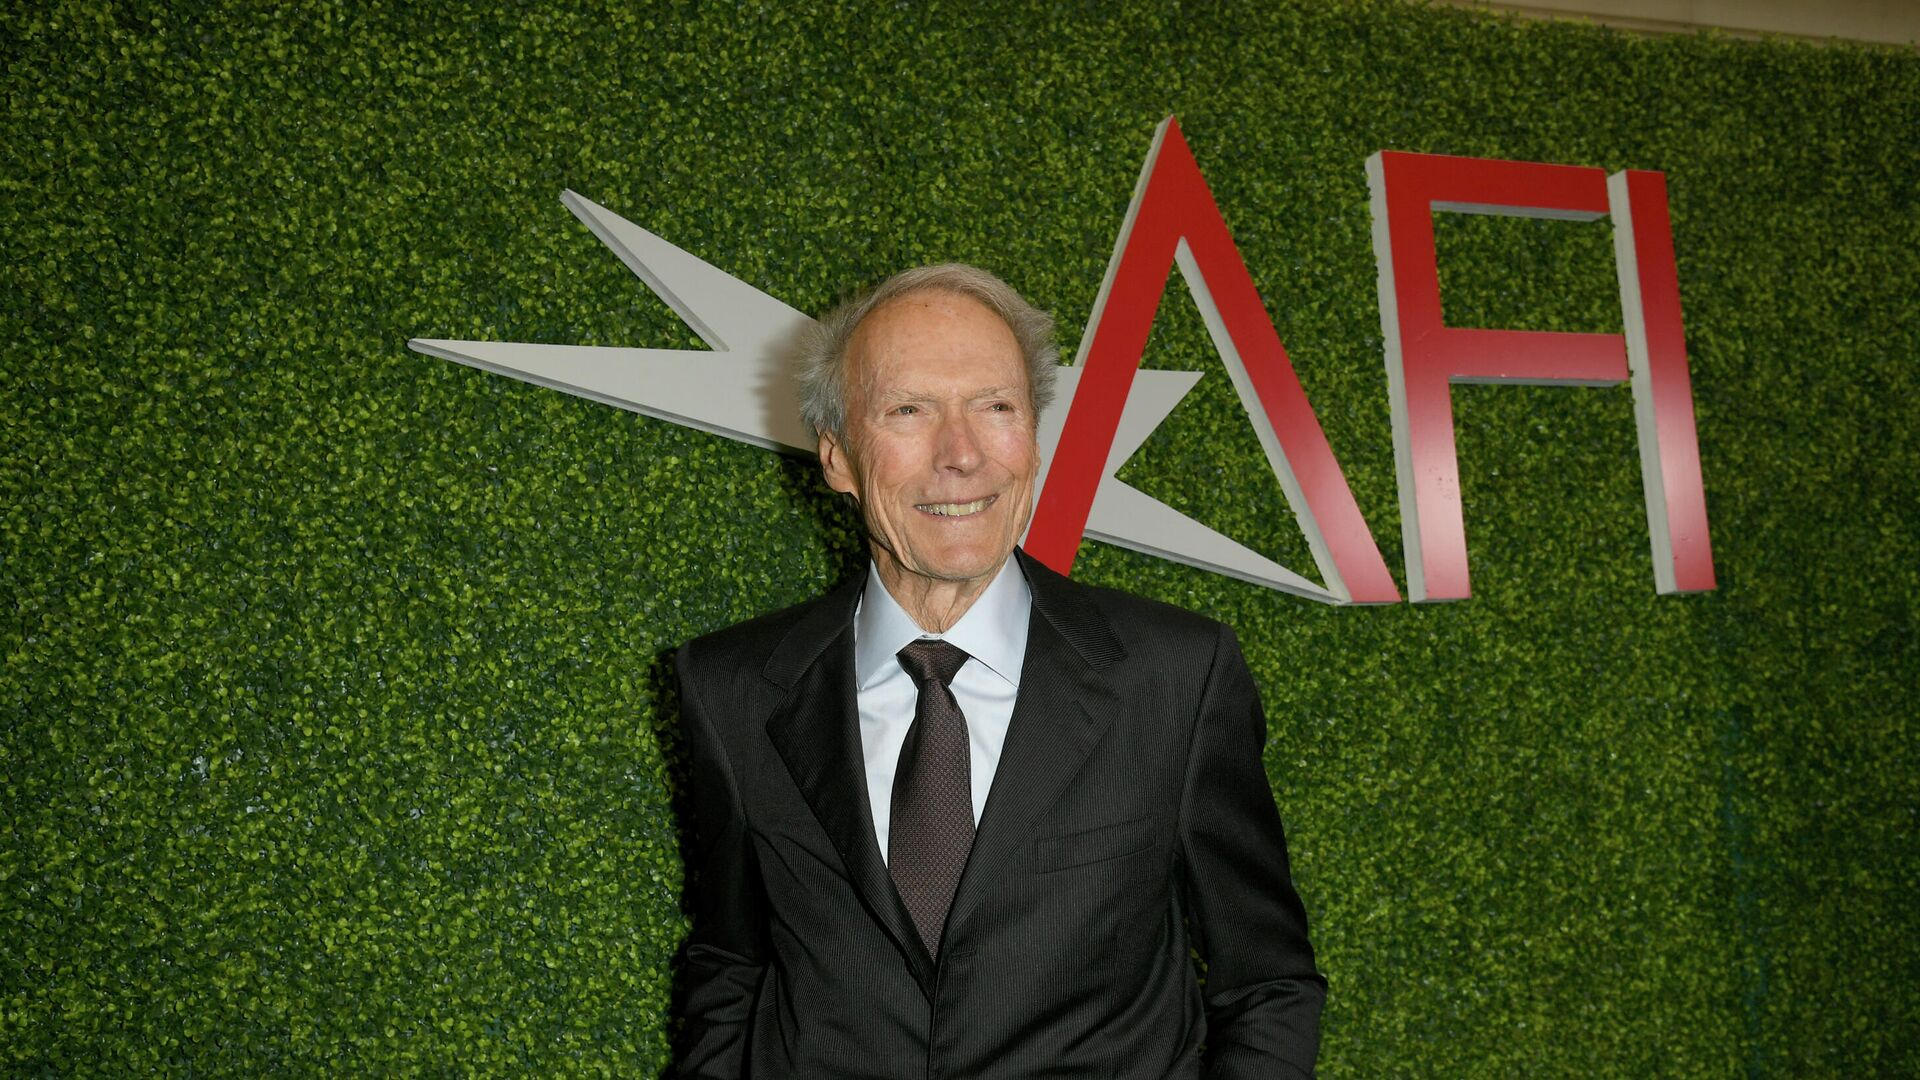 Clint Eastwood bei AFI Awards in Los Angeles (Archivbild) - SNA, 1920, 04.10.2021